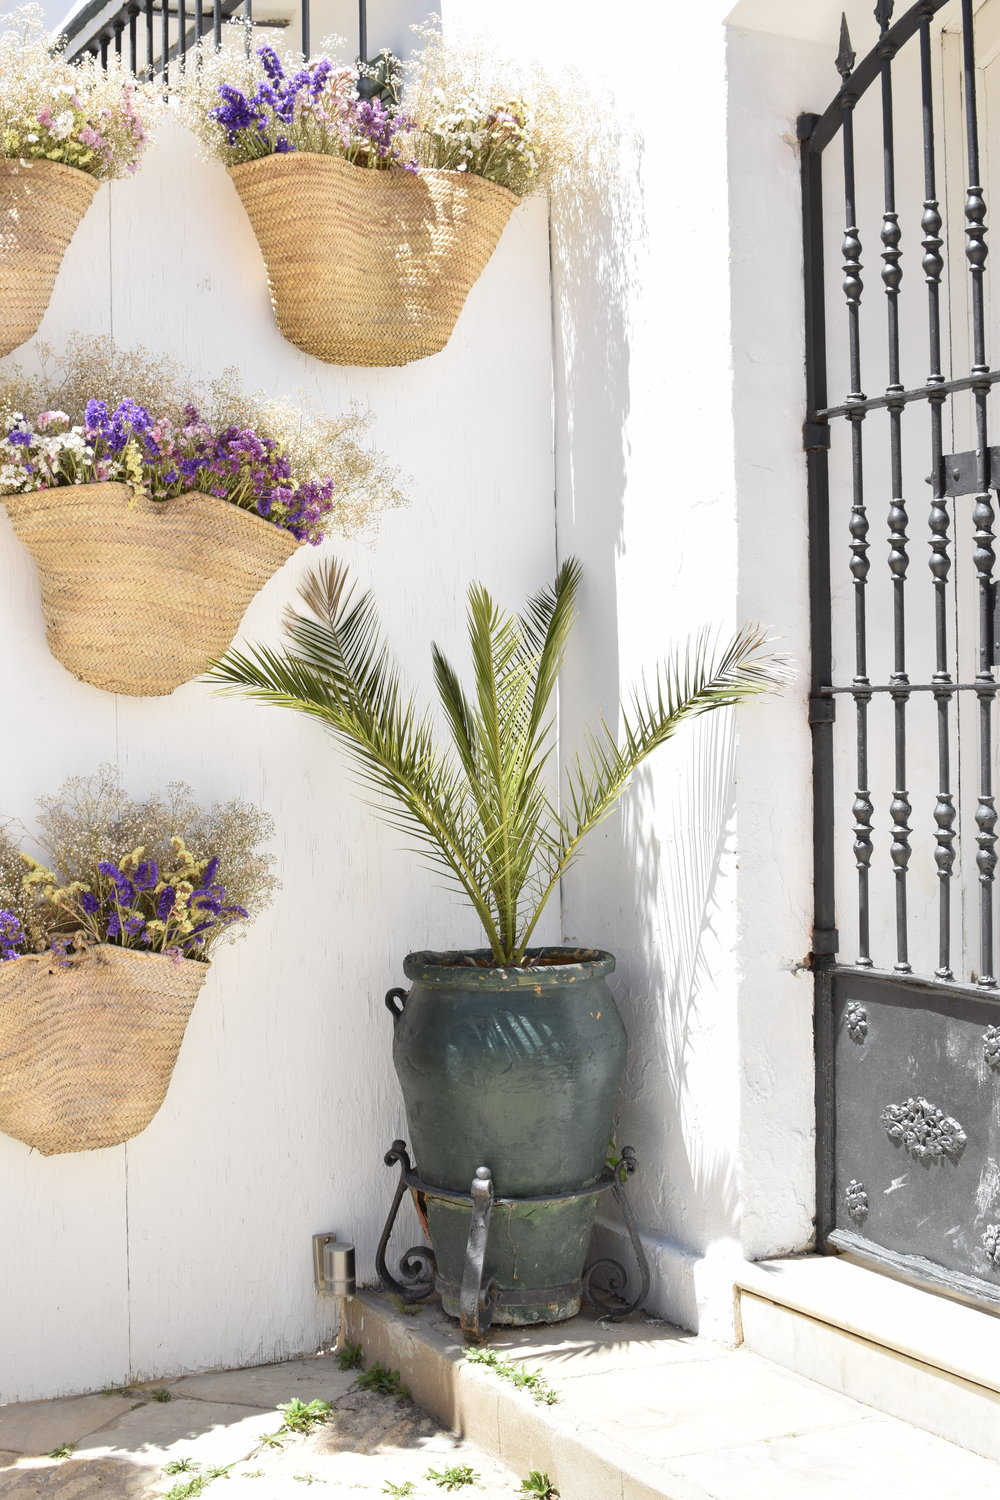 Baskets-with-floewers.jpg